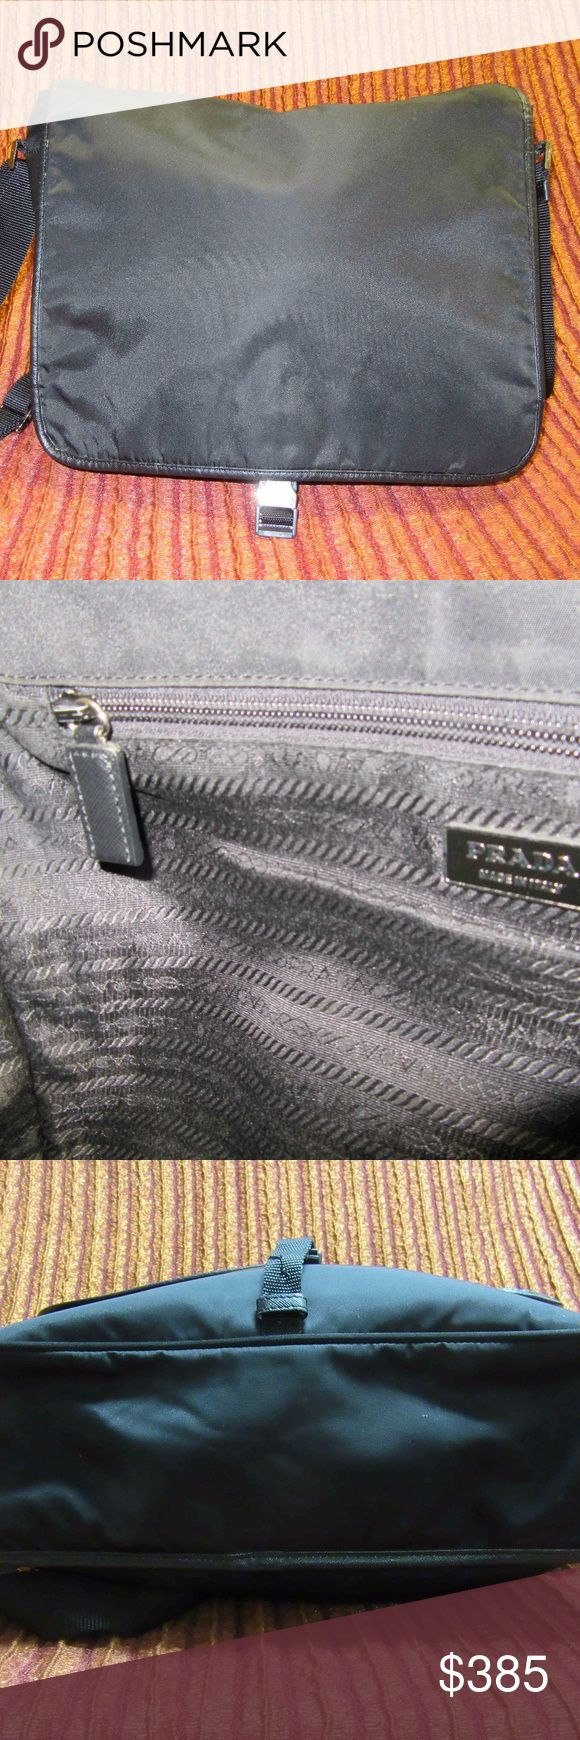 Prada Black Messenger Bag Prada Black microfiber messenger bag, amazing size and practical as an everyday bag. Rear outer pocket for extra storage. Gently used, in excellent condition. Bags Shoulder Bags